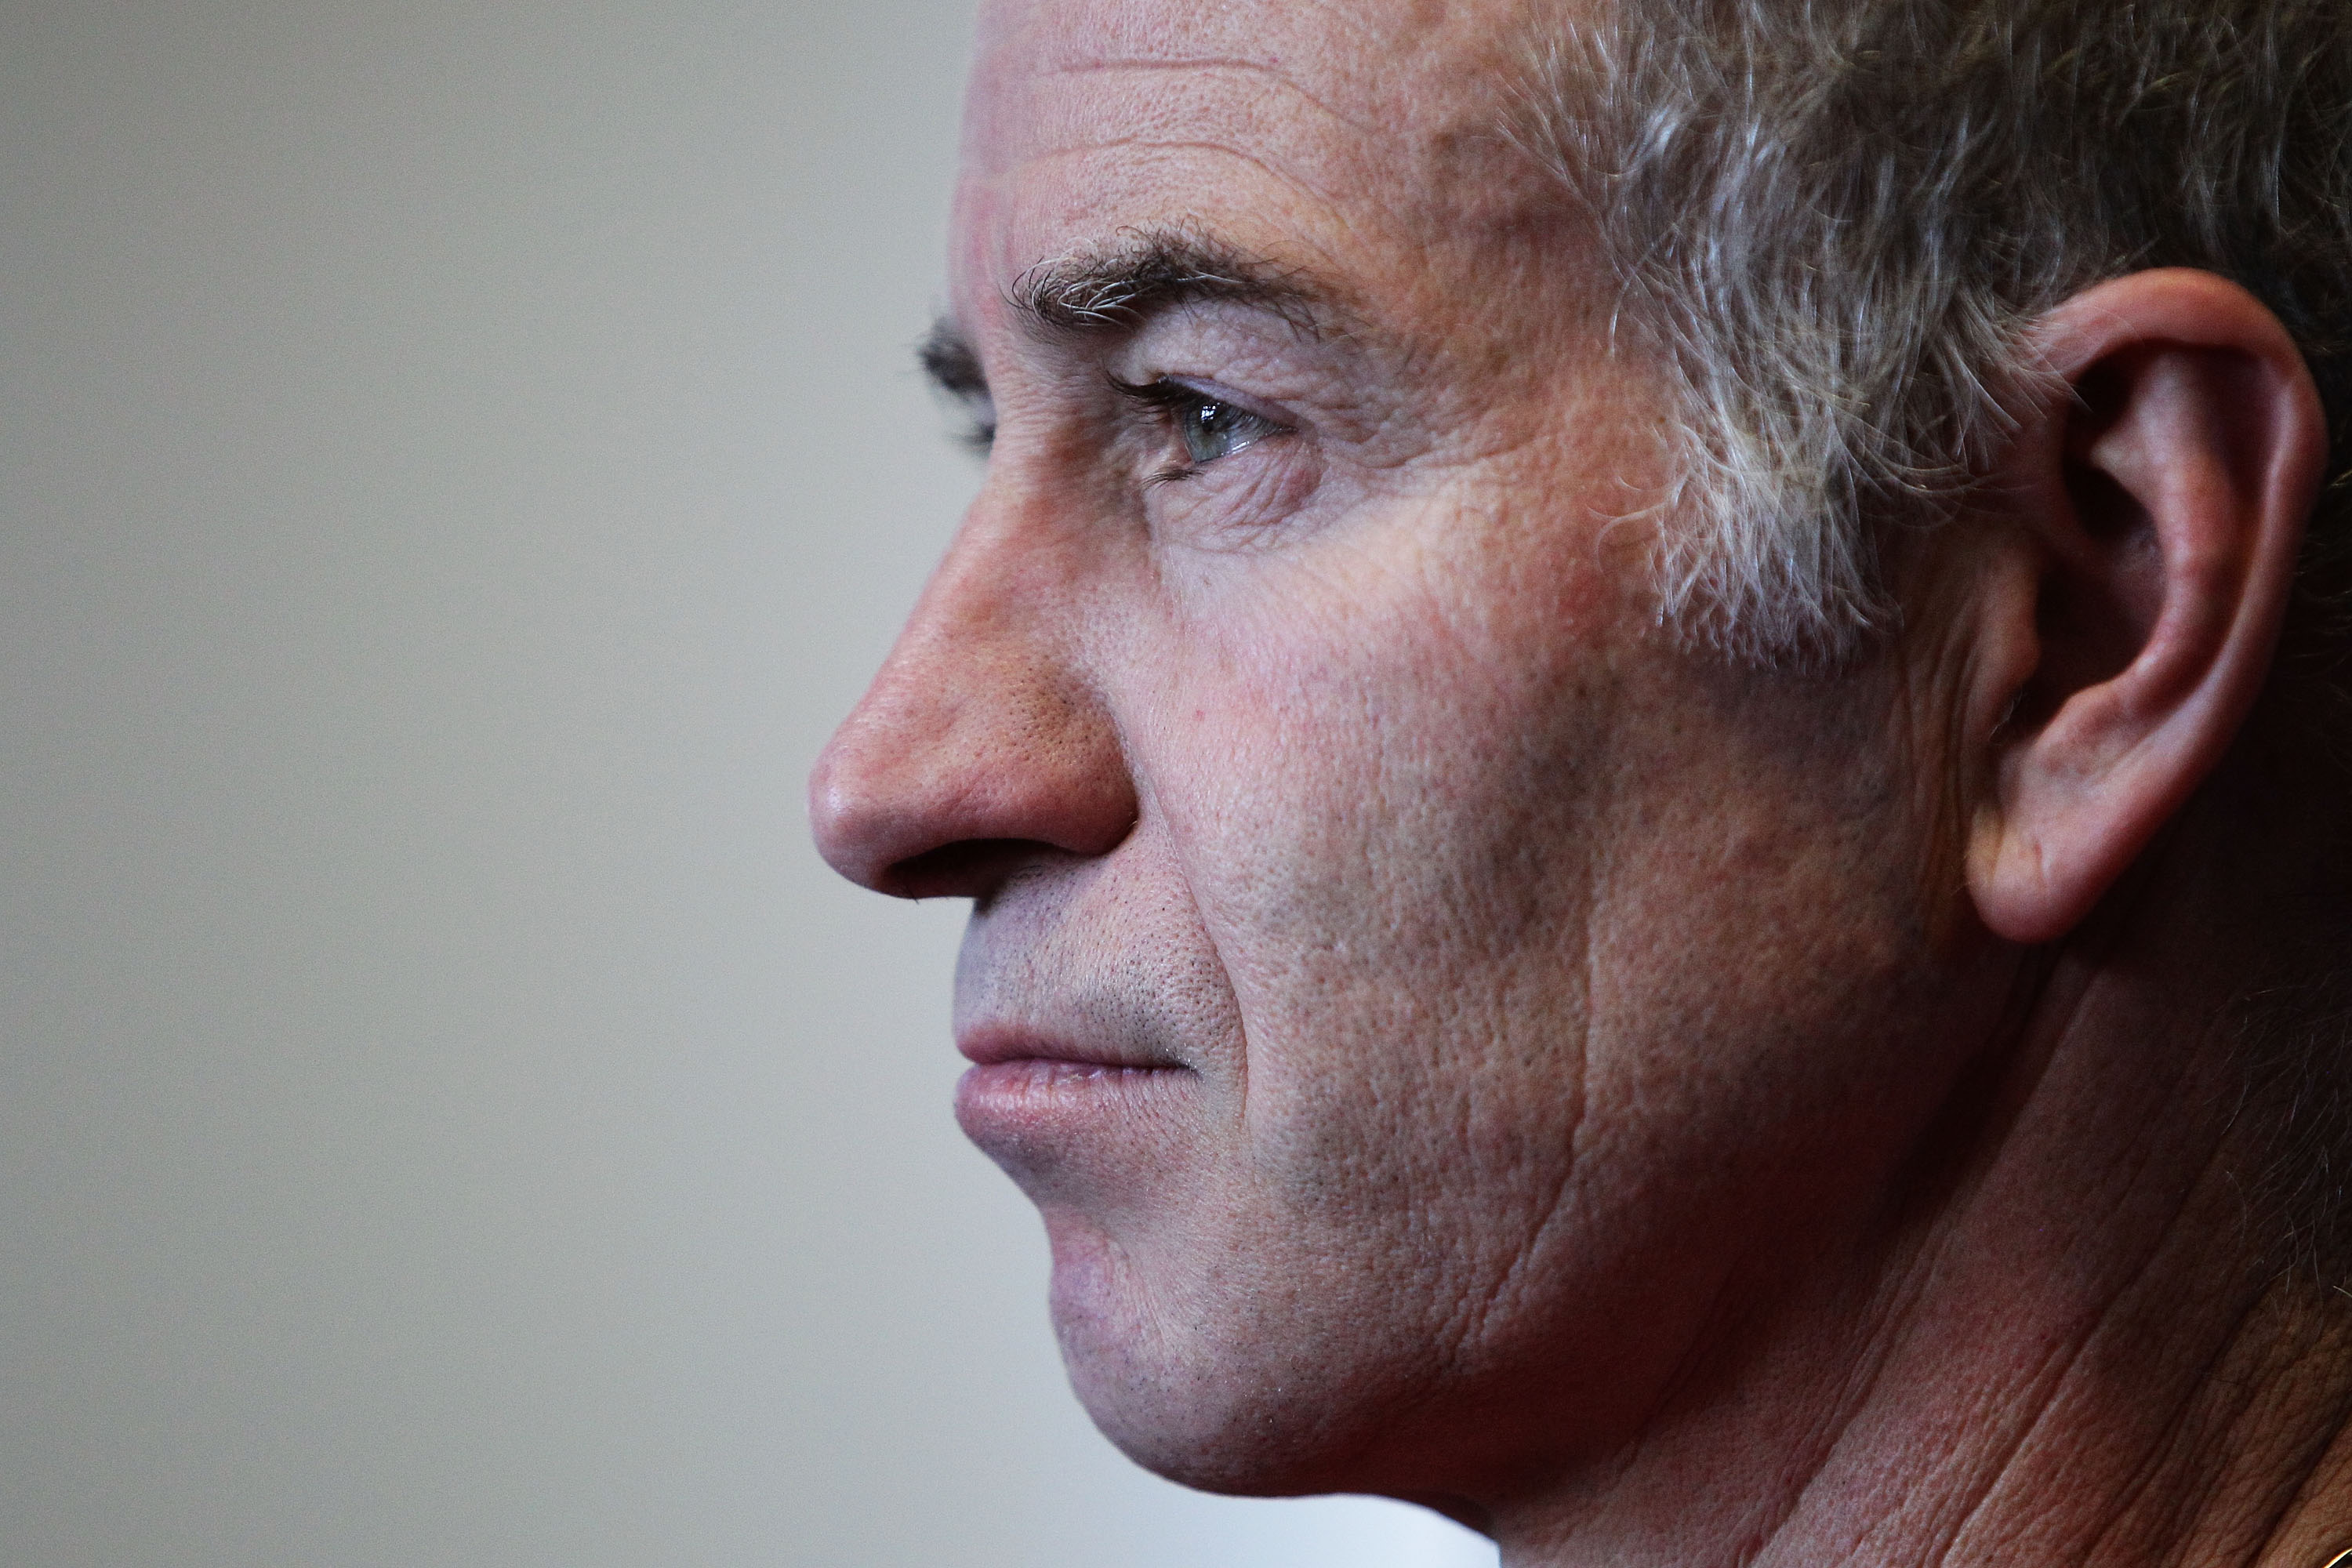 SYDNEY, AUSTRALIA - NOVEMBER 10:  Tennis player John McEnroe of the United States look on during a media session for the Champions Downunder Tournament at Events NSW on November 10, 2010 in Sydney, Australia.  (Photo by Brendon Thorne/Getty Images)